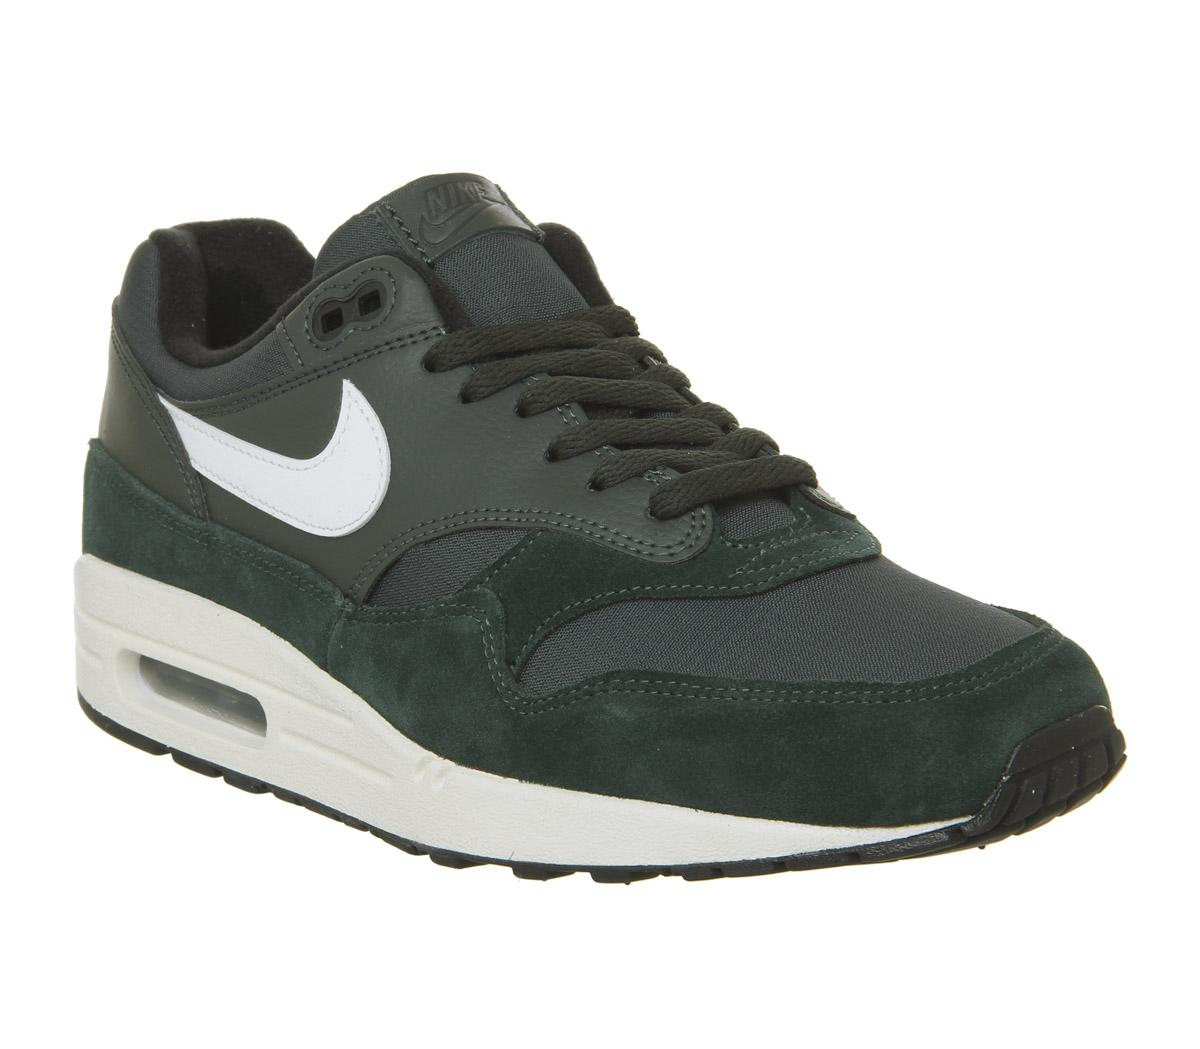 Nike Air Max 1 Trainers Outdoor Green